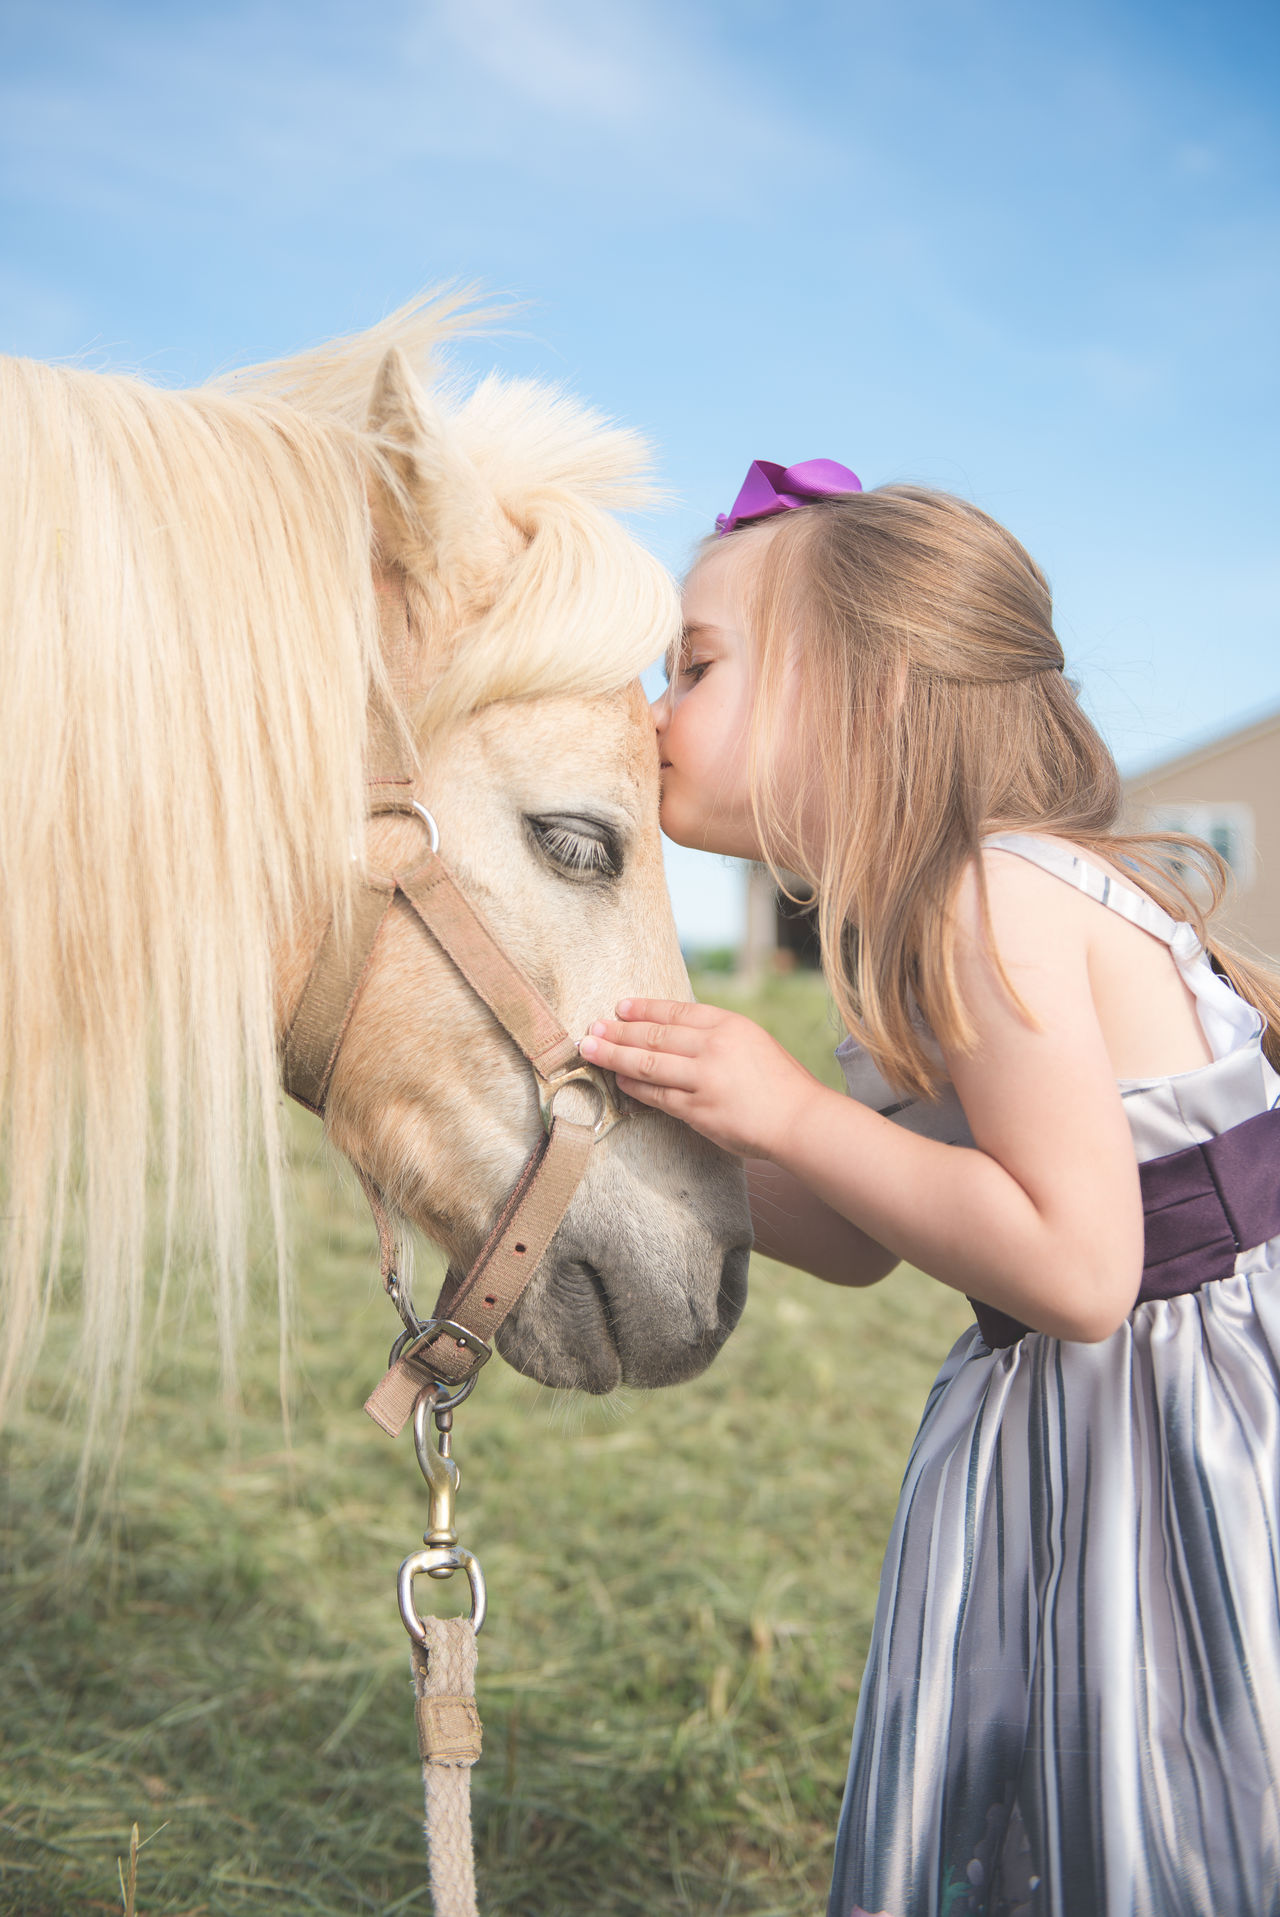 Beautiful stock photos of pferde, horse, one animal, domestic animals, sky